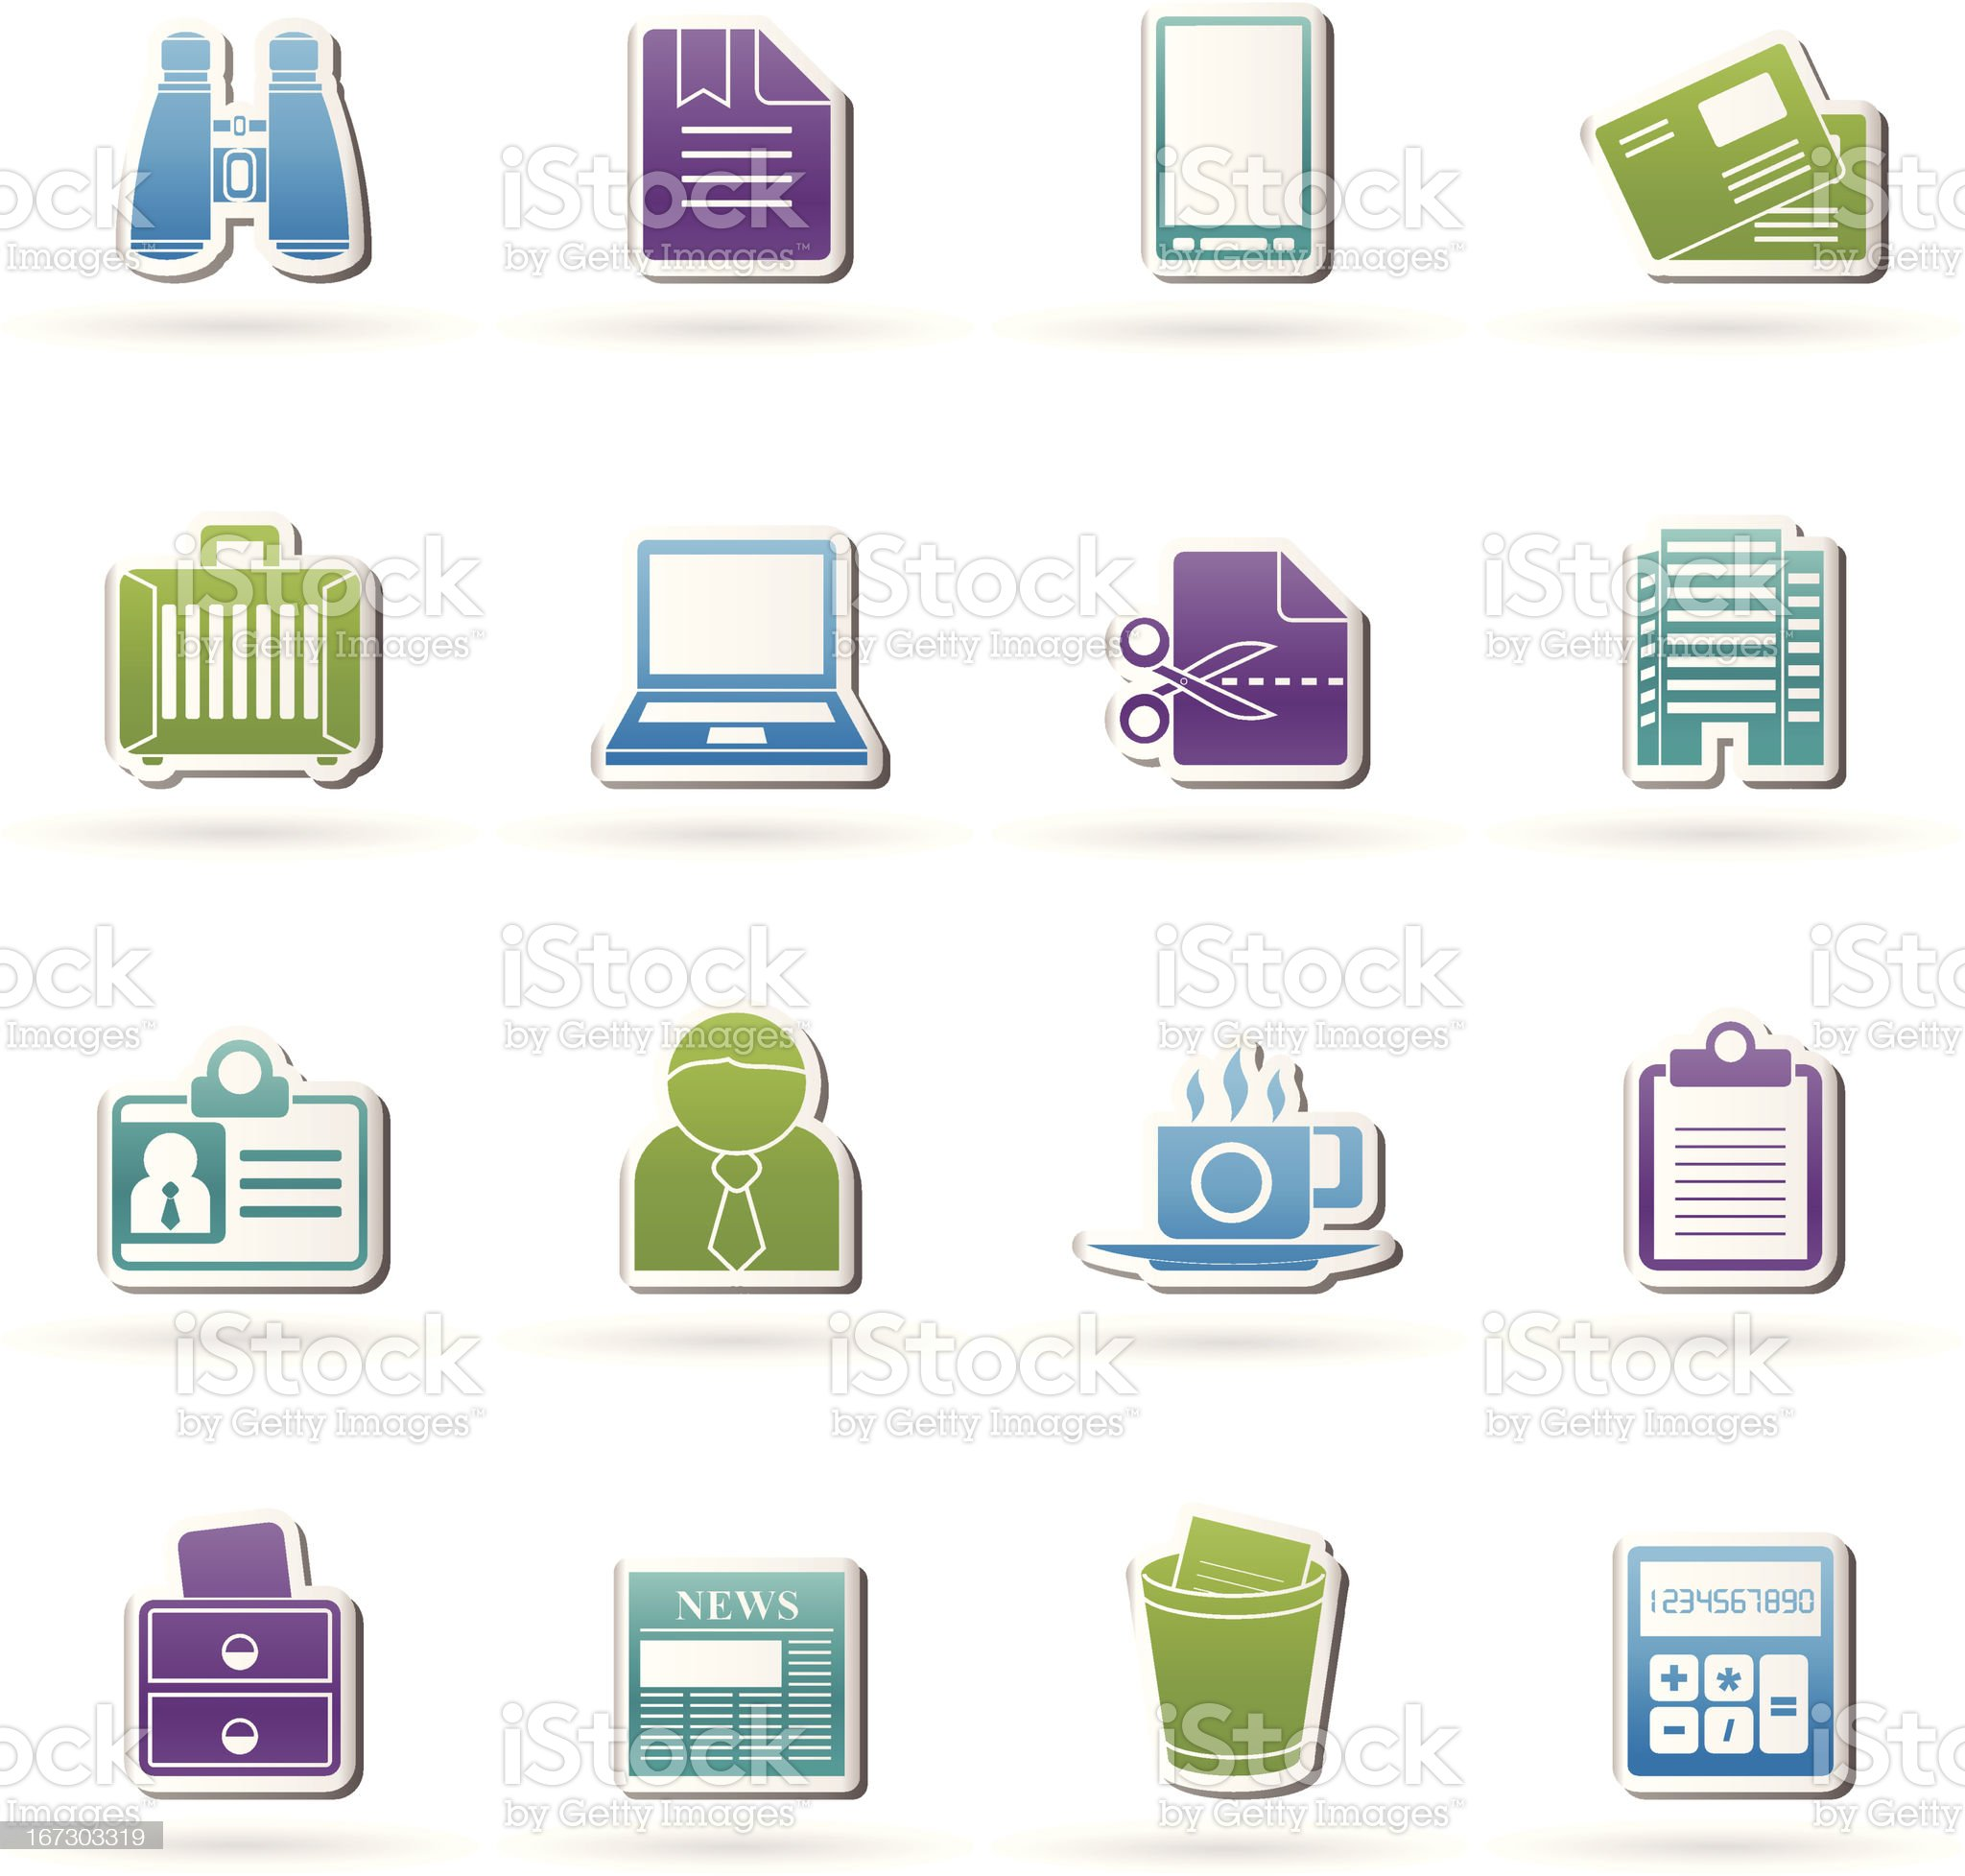 Business and office elements icons royalty-free stock vector art